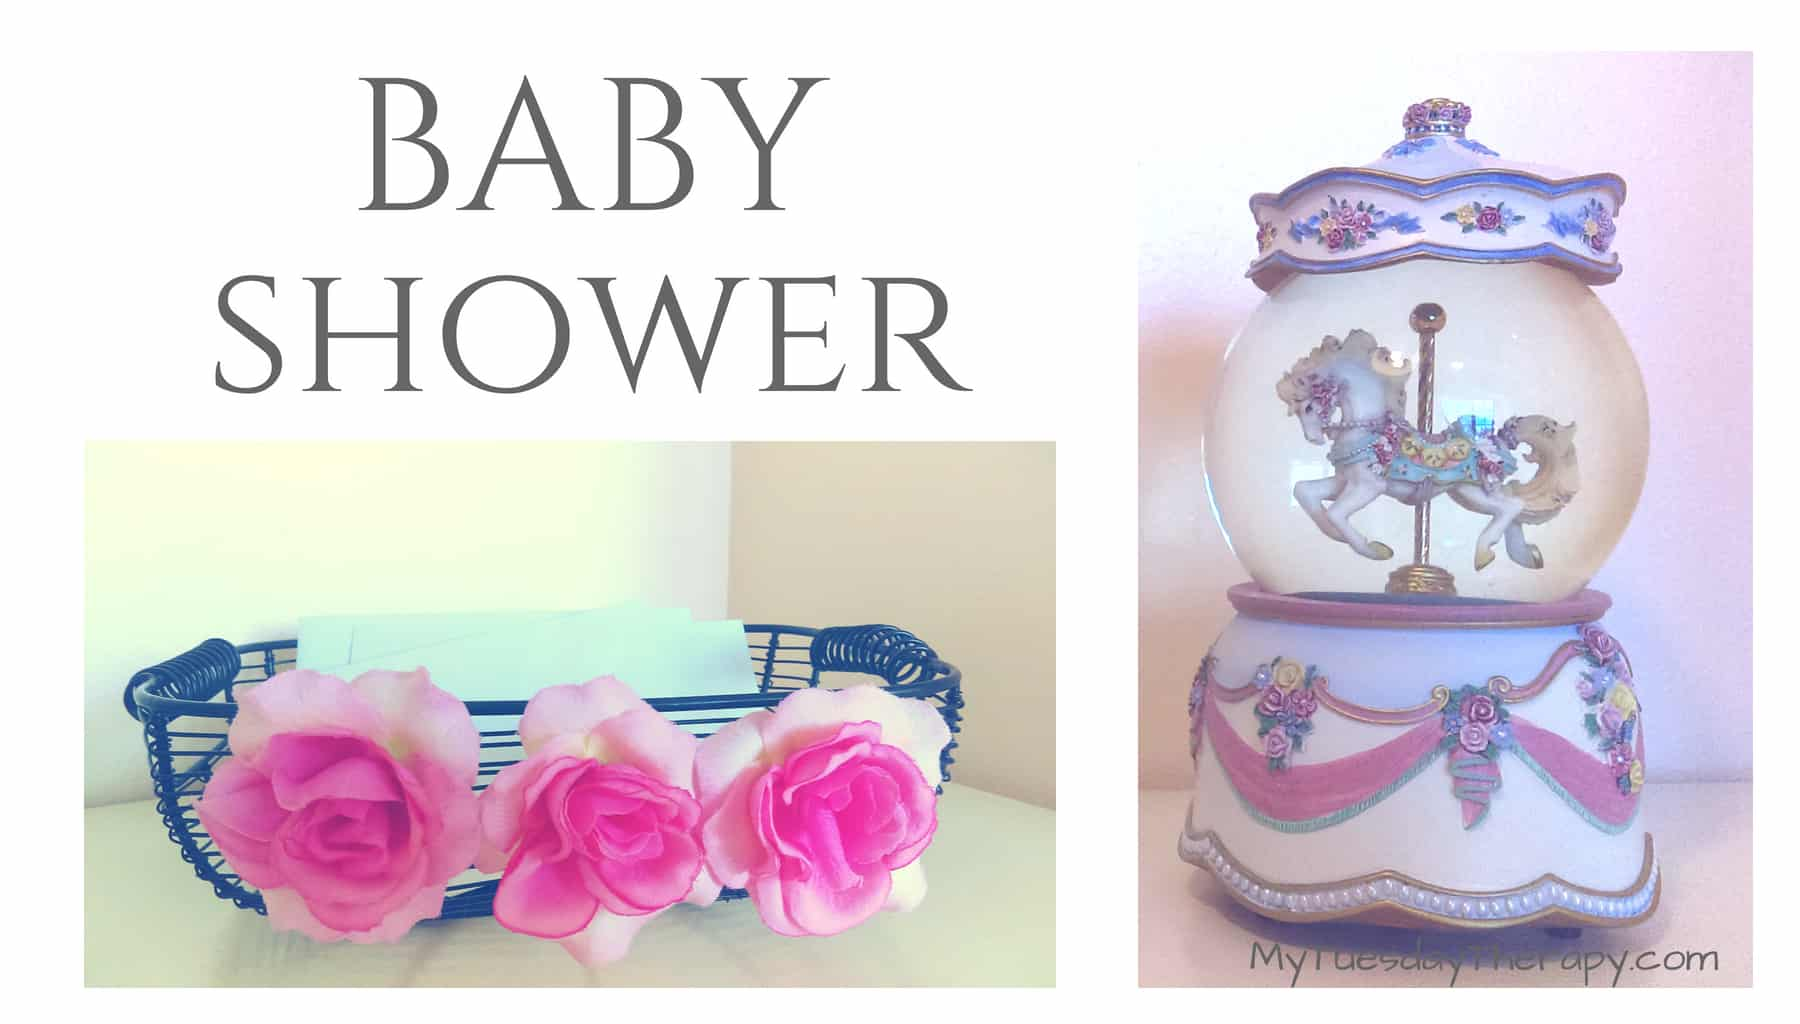 Baby Shower On Budget. Host a cheap baby shower that it beautiful and full of memories.